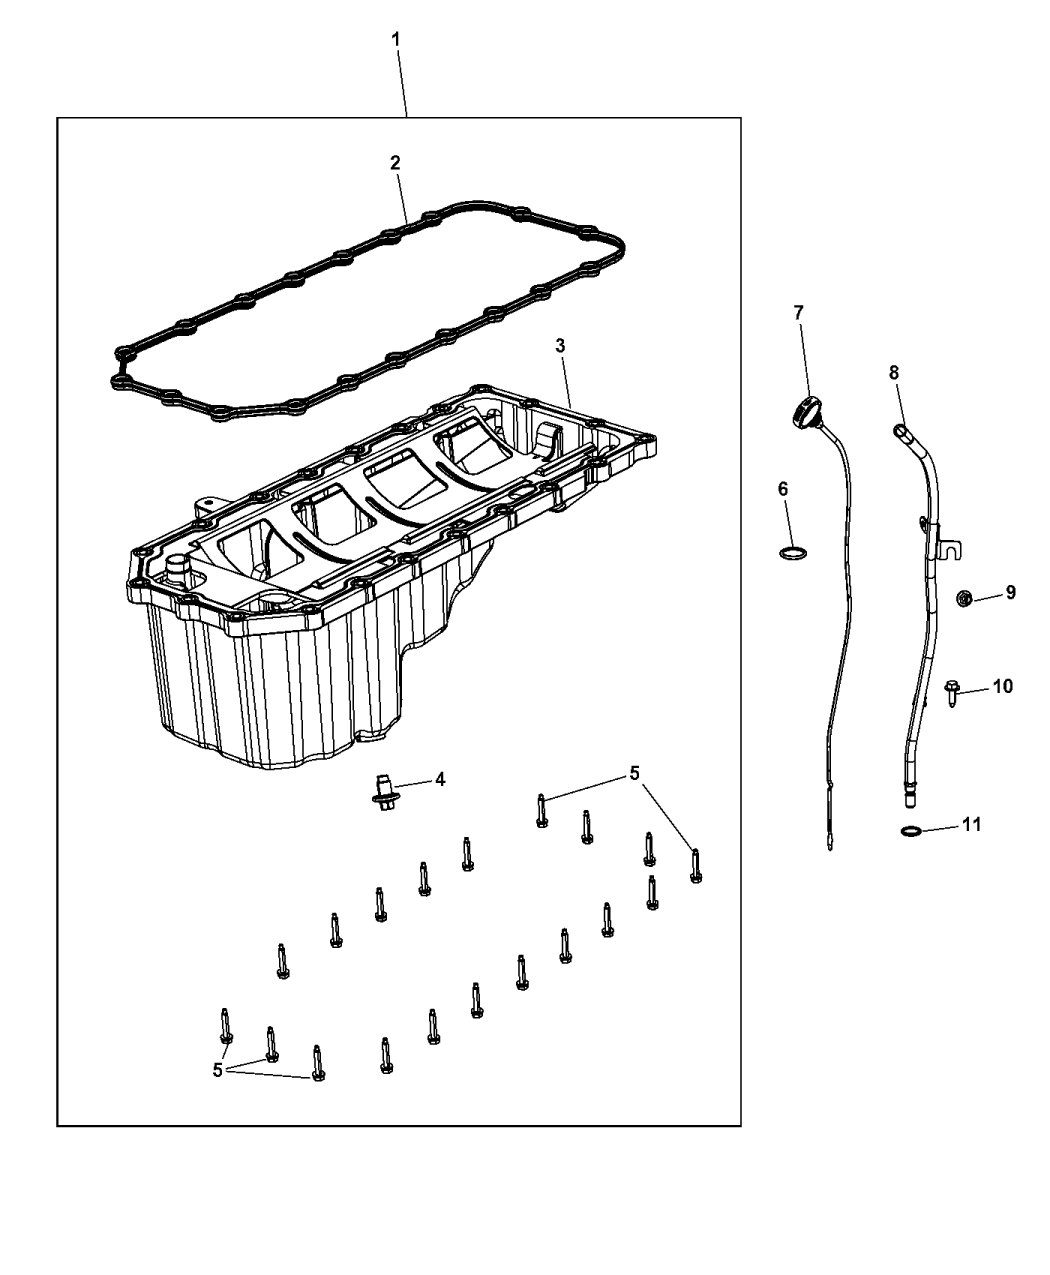 53034185ad Genuine Mopar Tube Engine Oil Indicator 2014 Jeep Diagram Grand Cherokee Pan Level Related Parts